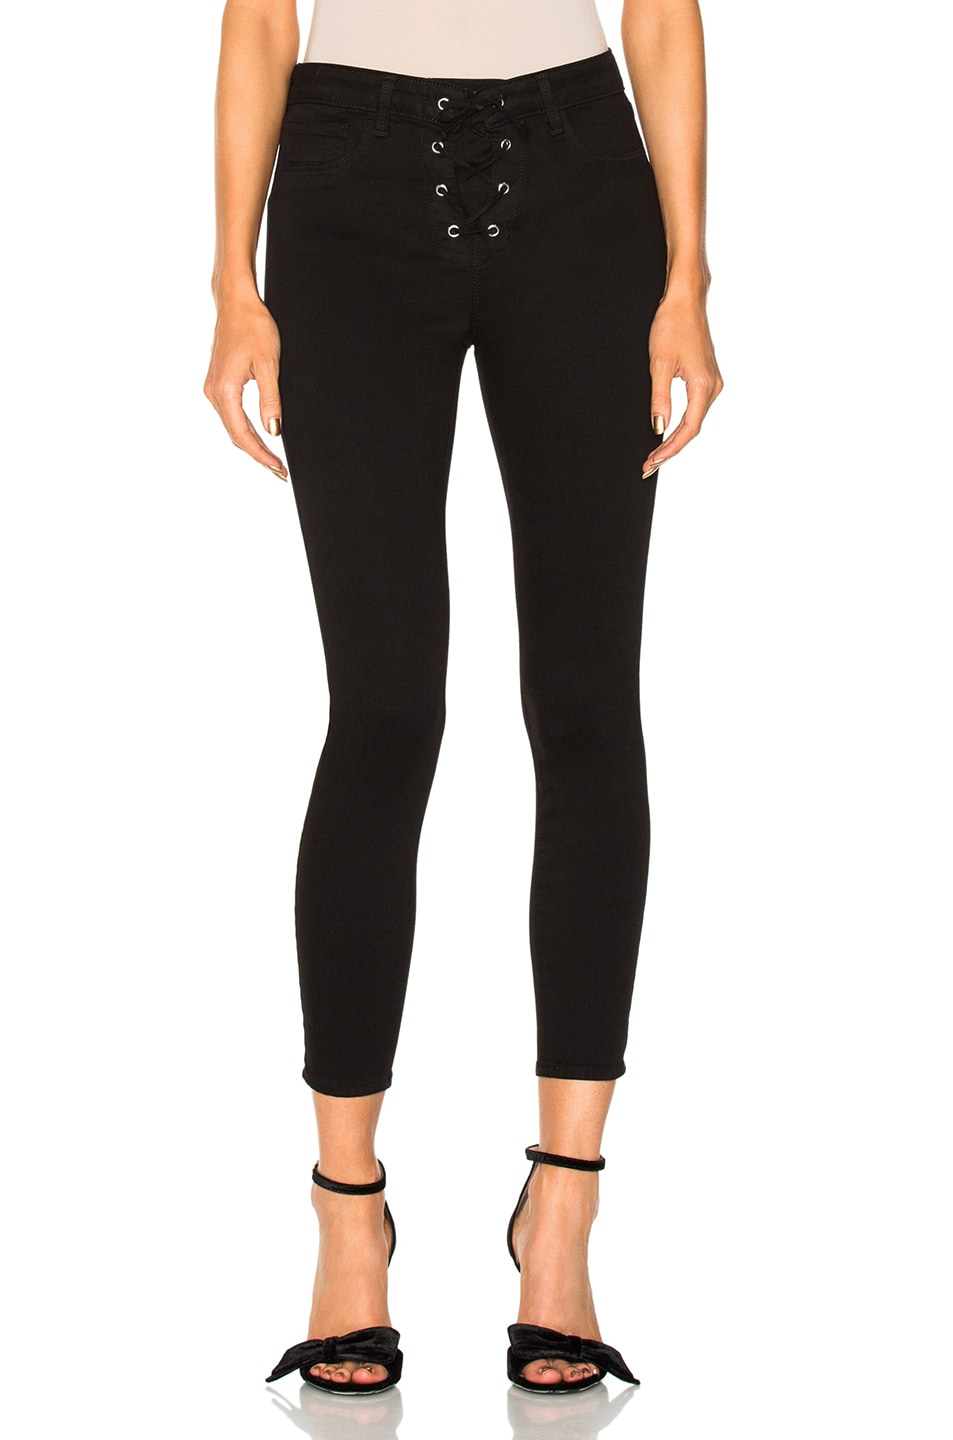 35a7a62fd36f0c Image 1 of L'AGENCE Cherie Lace Up Pants in Black